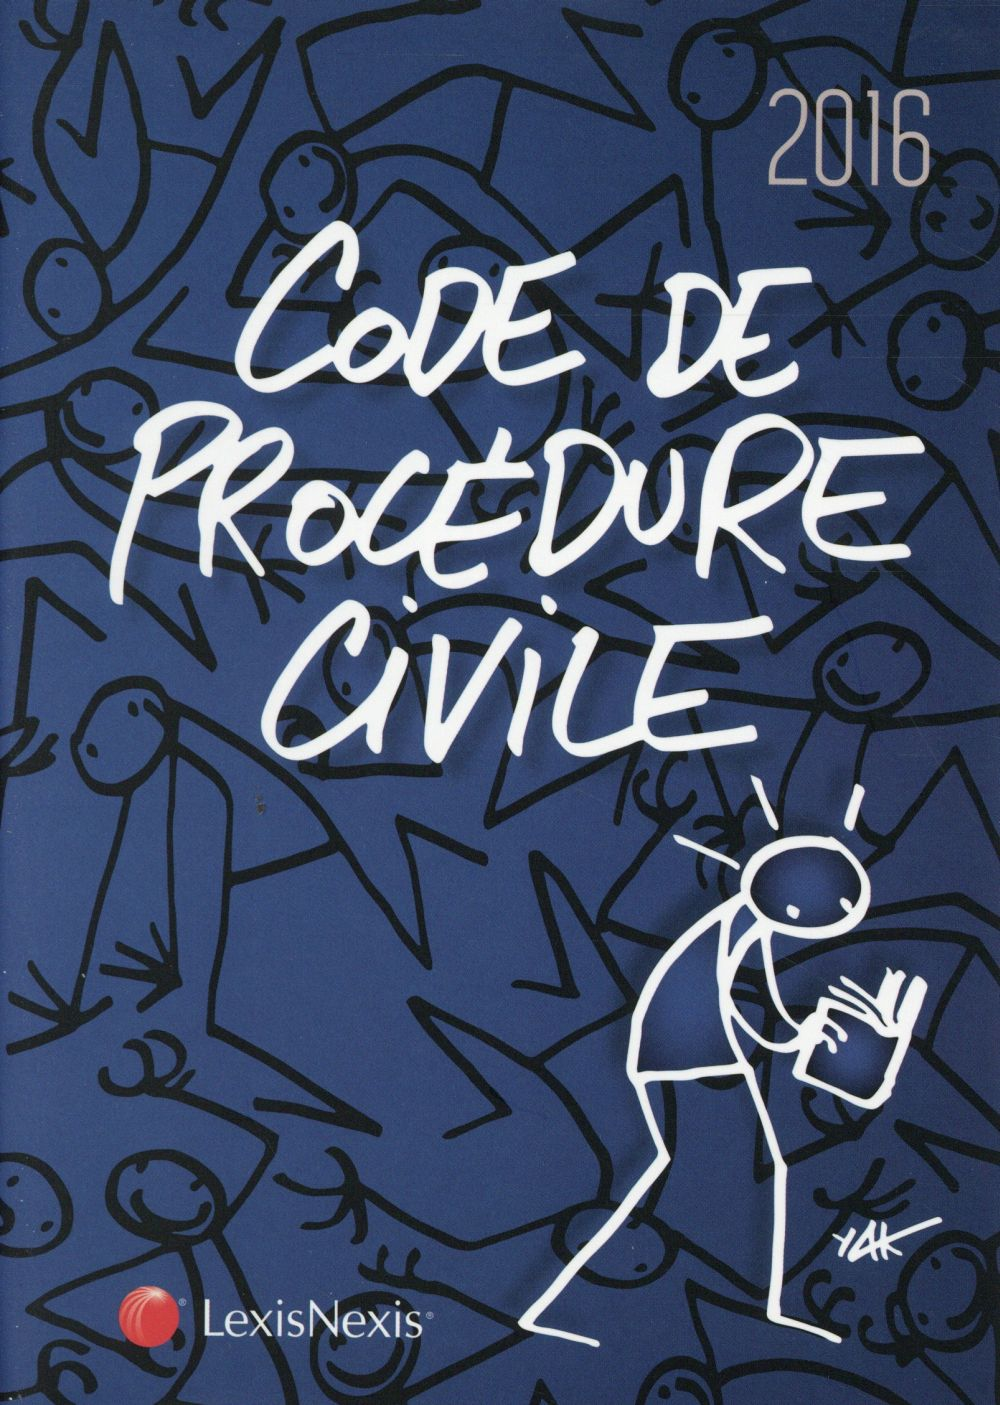 CODE DE PROCEDURE CIVILE 2016  JAQUETTE ELYX - 29E EDITION